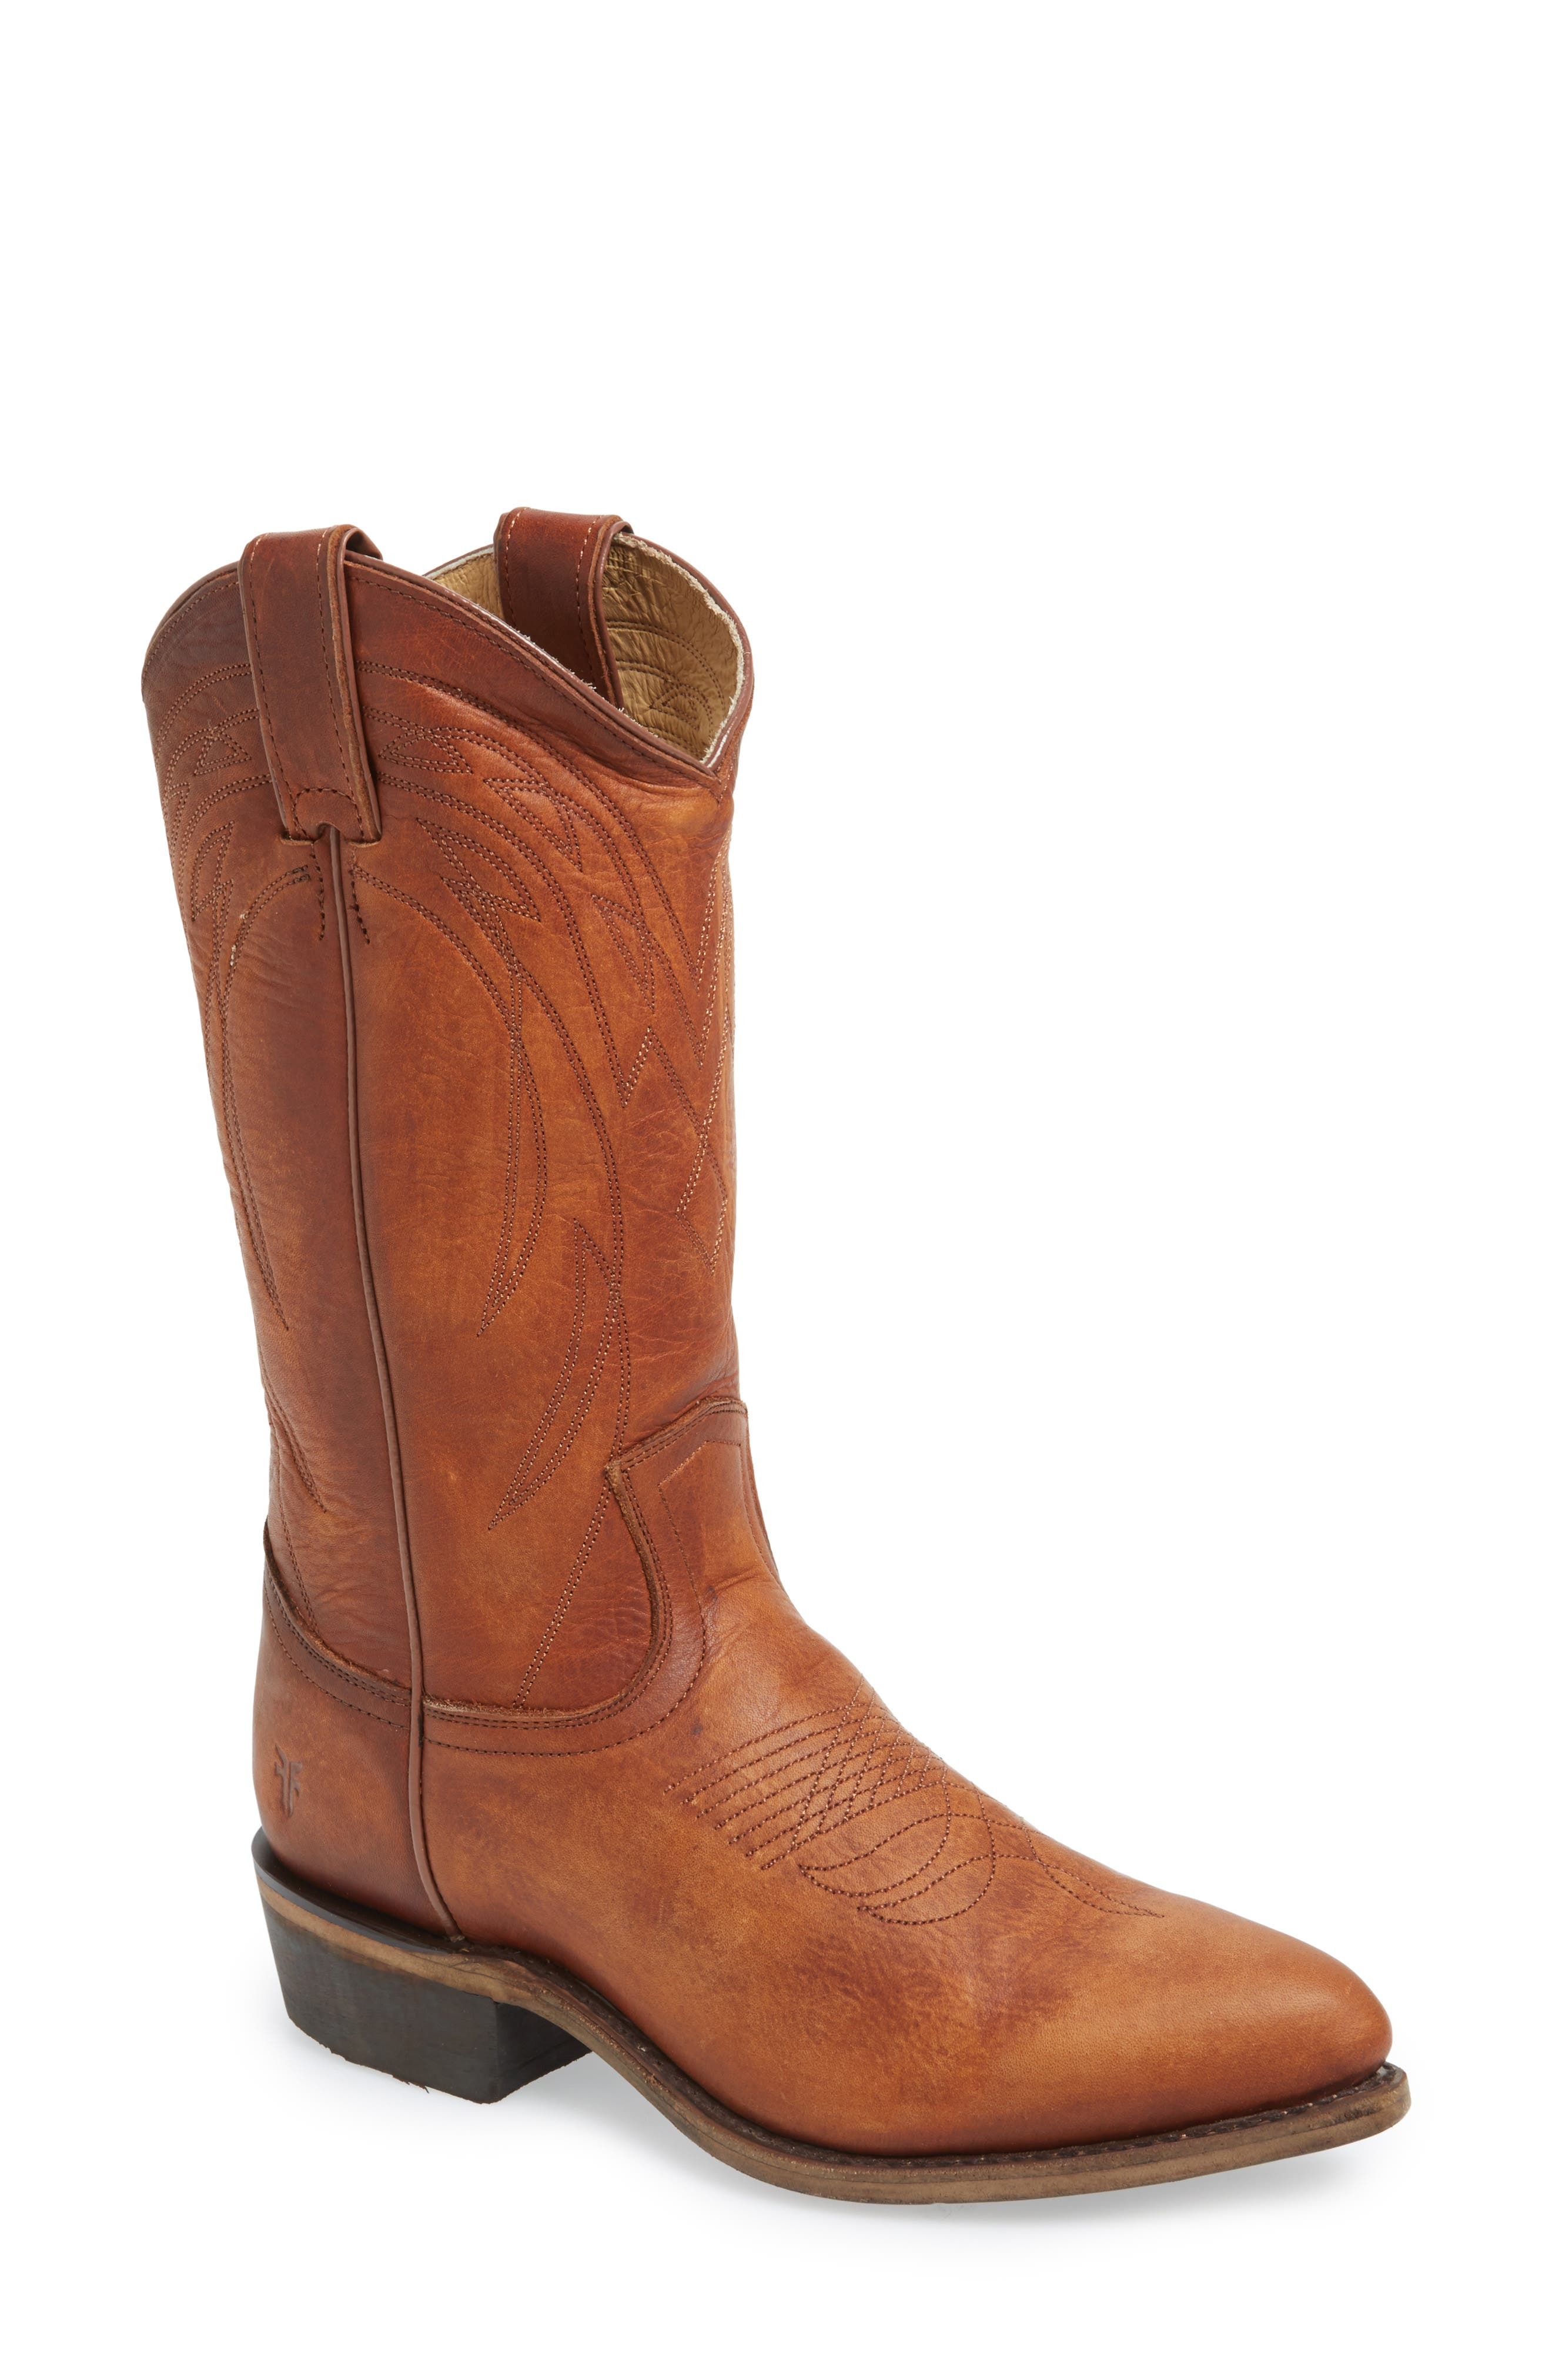 'Billy' Western Boot,                             Alternate thumbnail 5, color,                             235